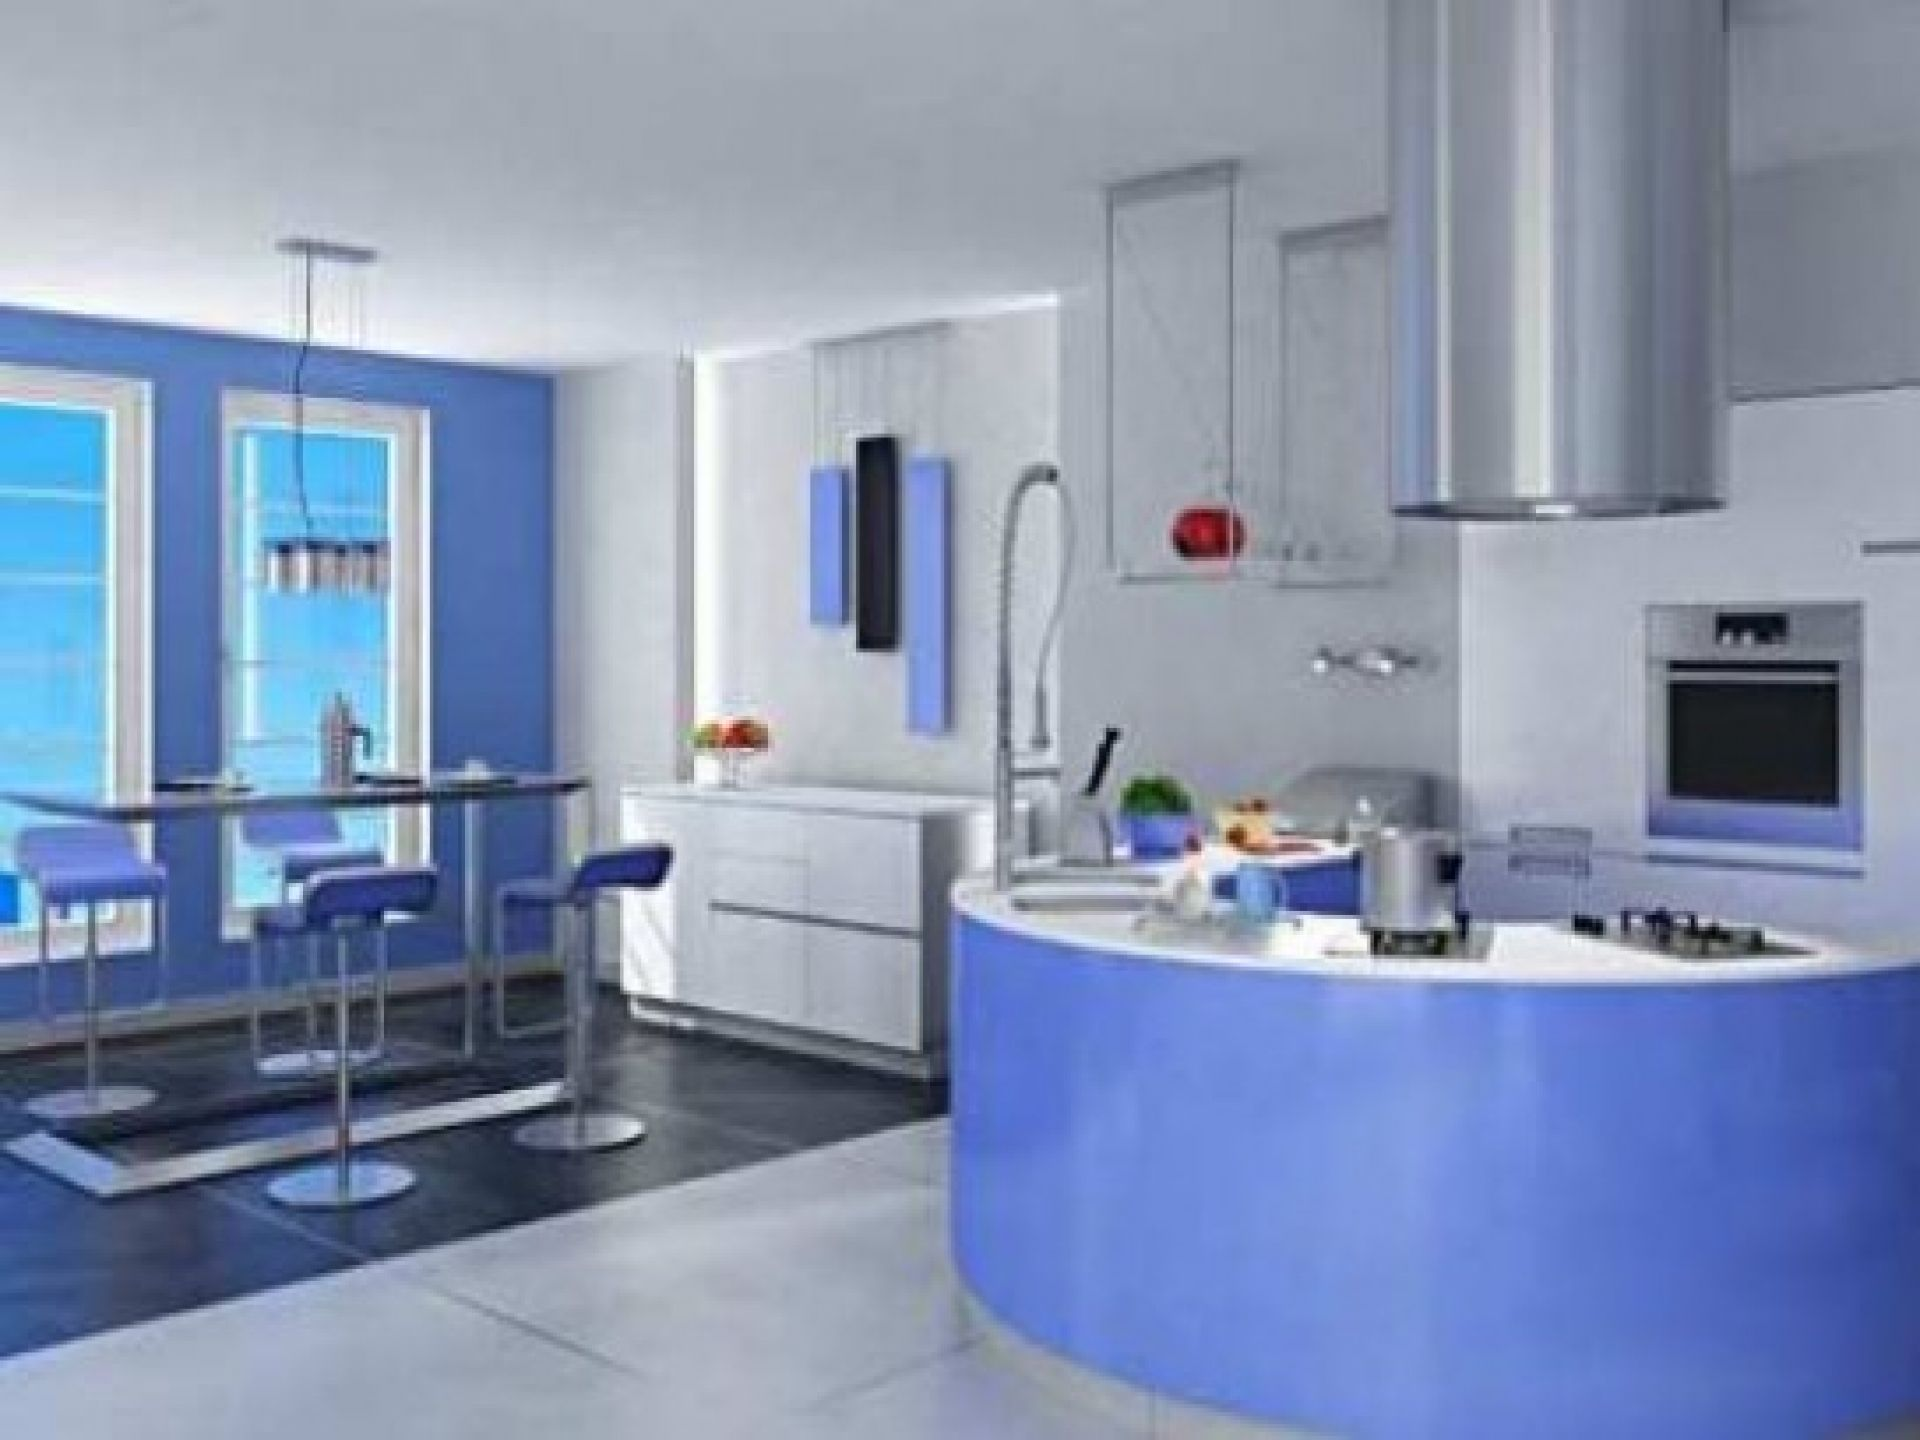 Design small kitchen designs photo gallery photos the image simple